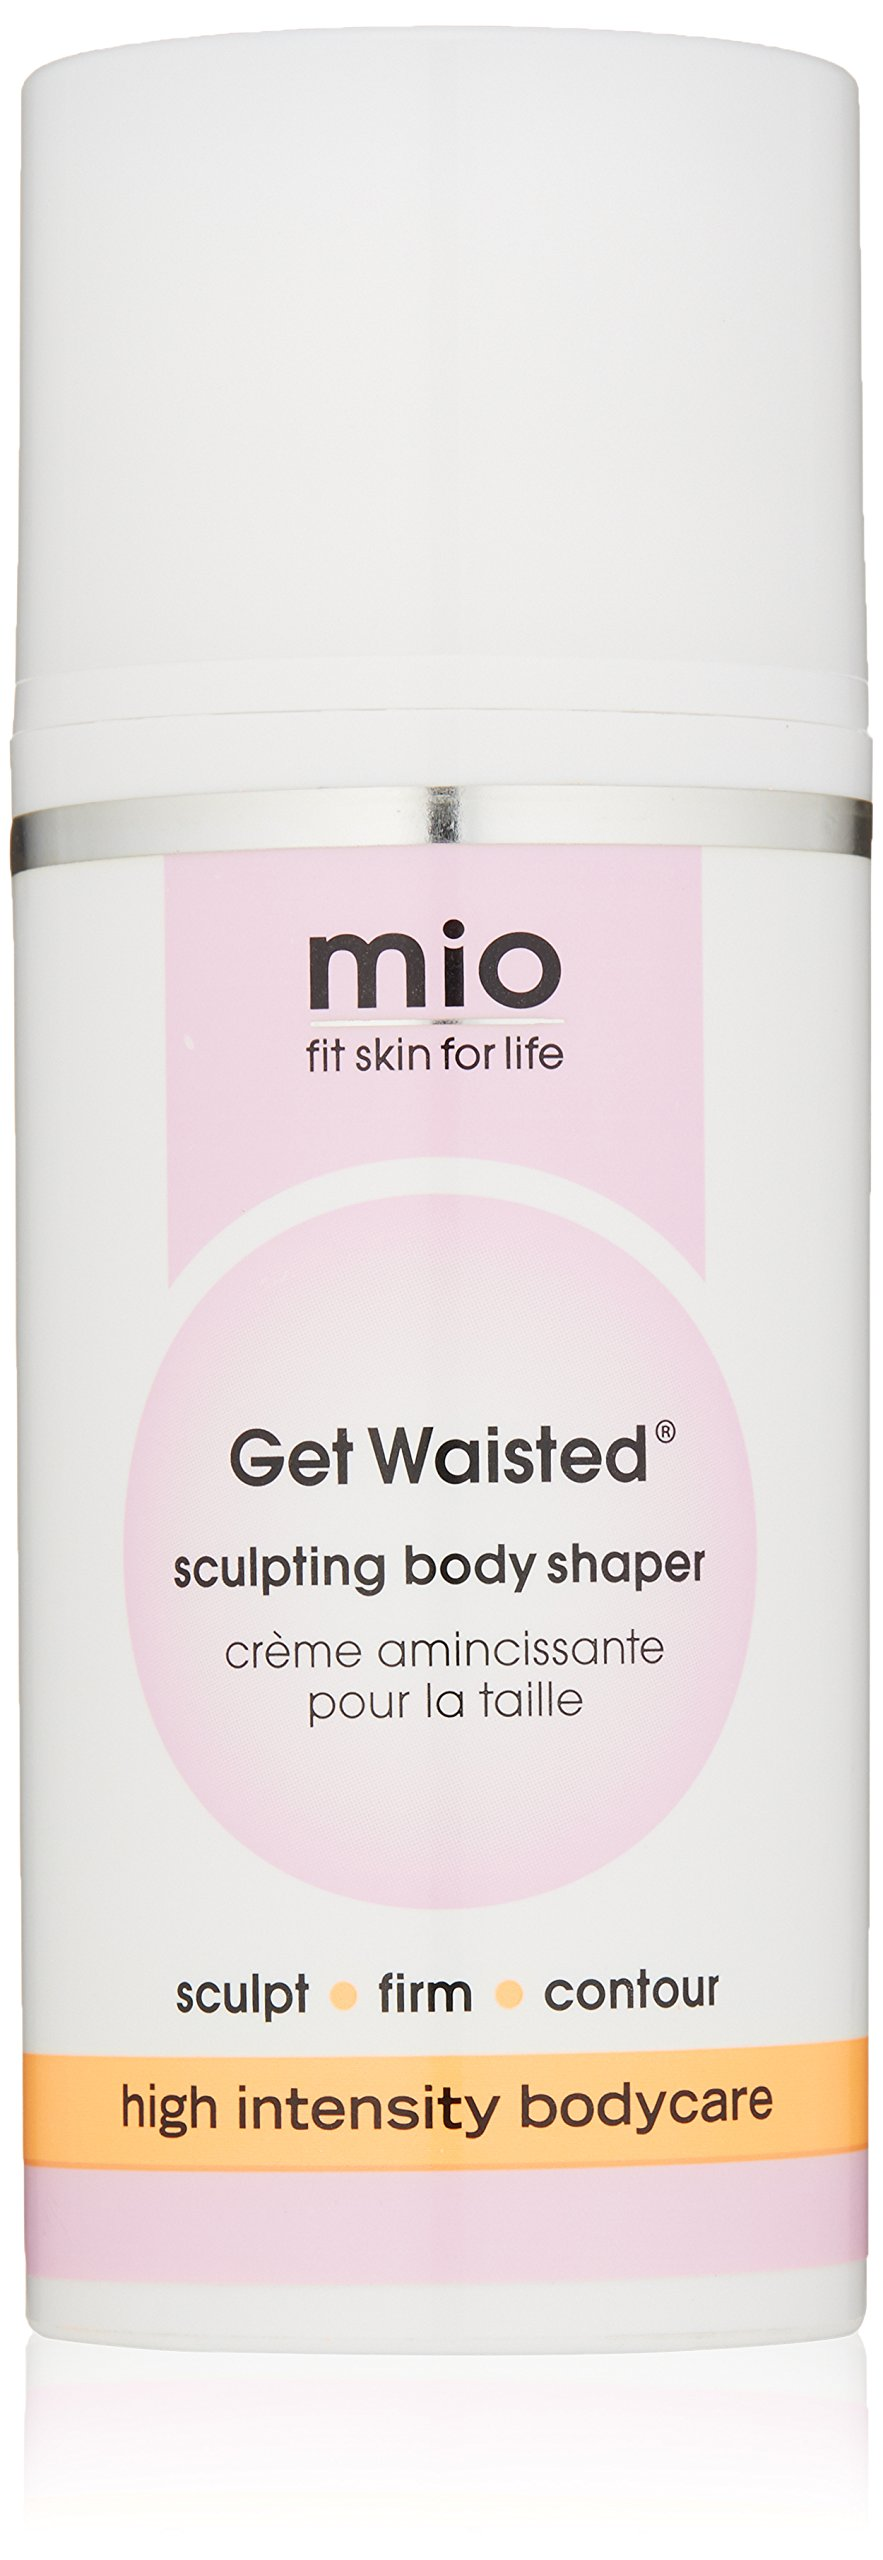 Mio Get Waisted Sculpting Body Shaper, 3.4 Fl Oz